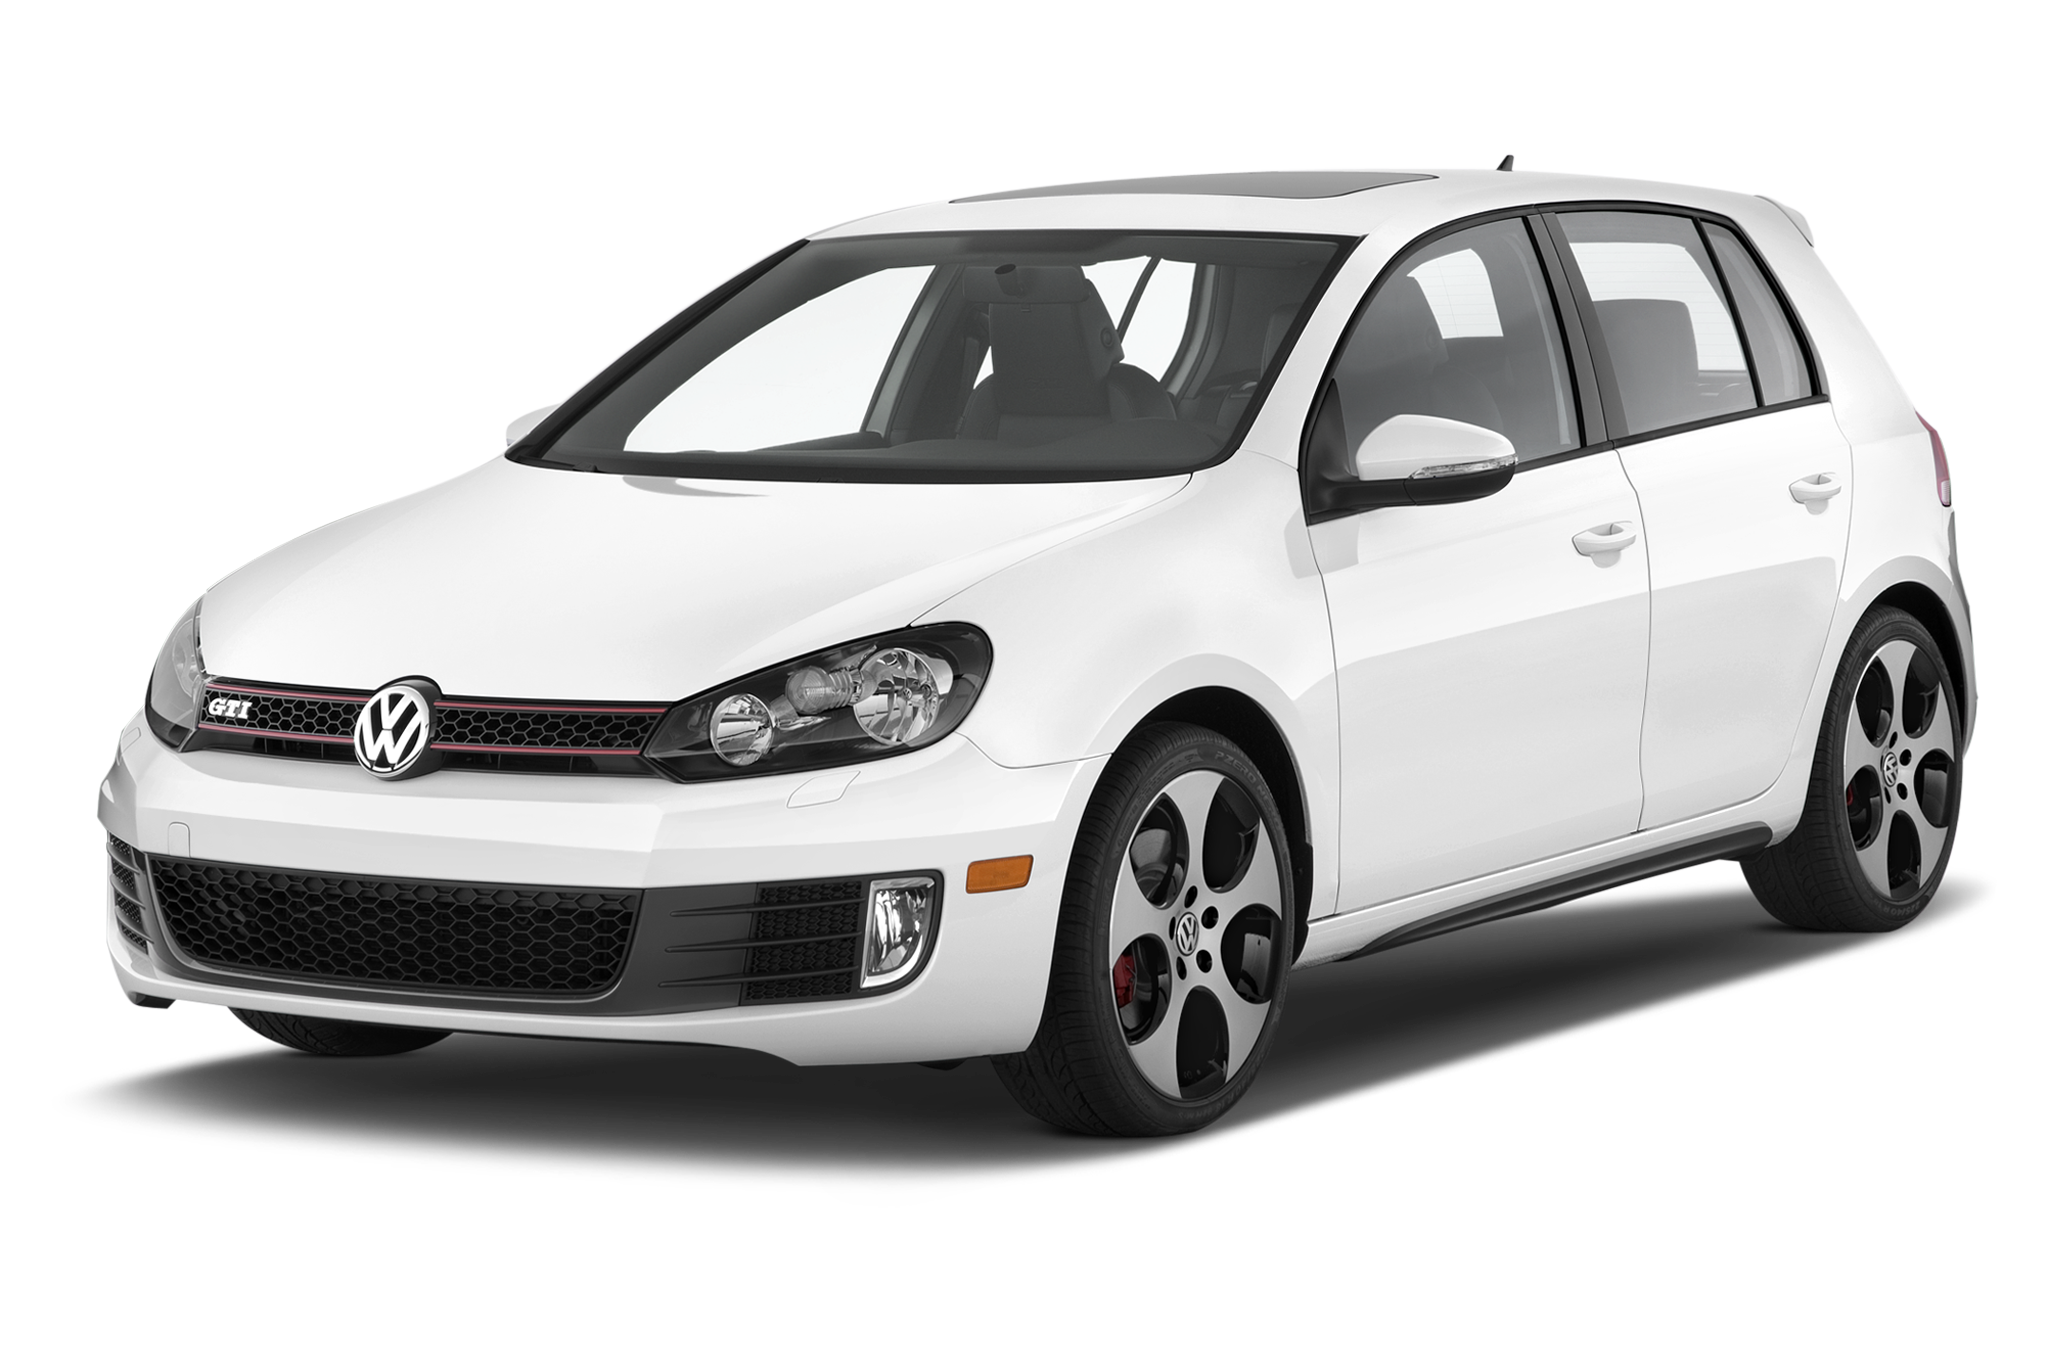 2010 Volkswagen GTI  2010 Automobile of the Year  Automobile